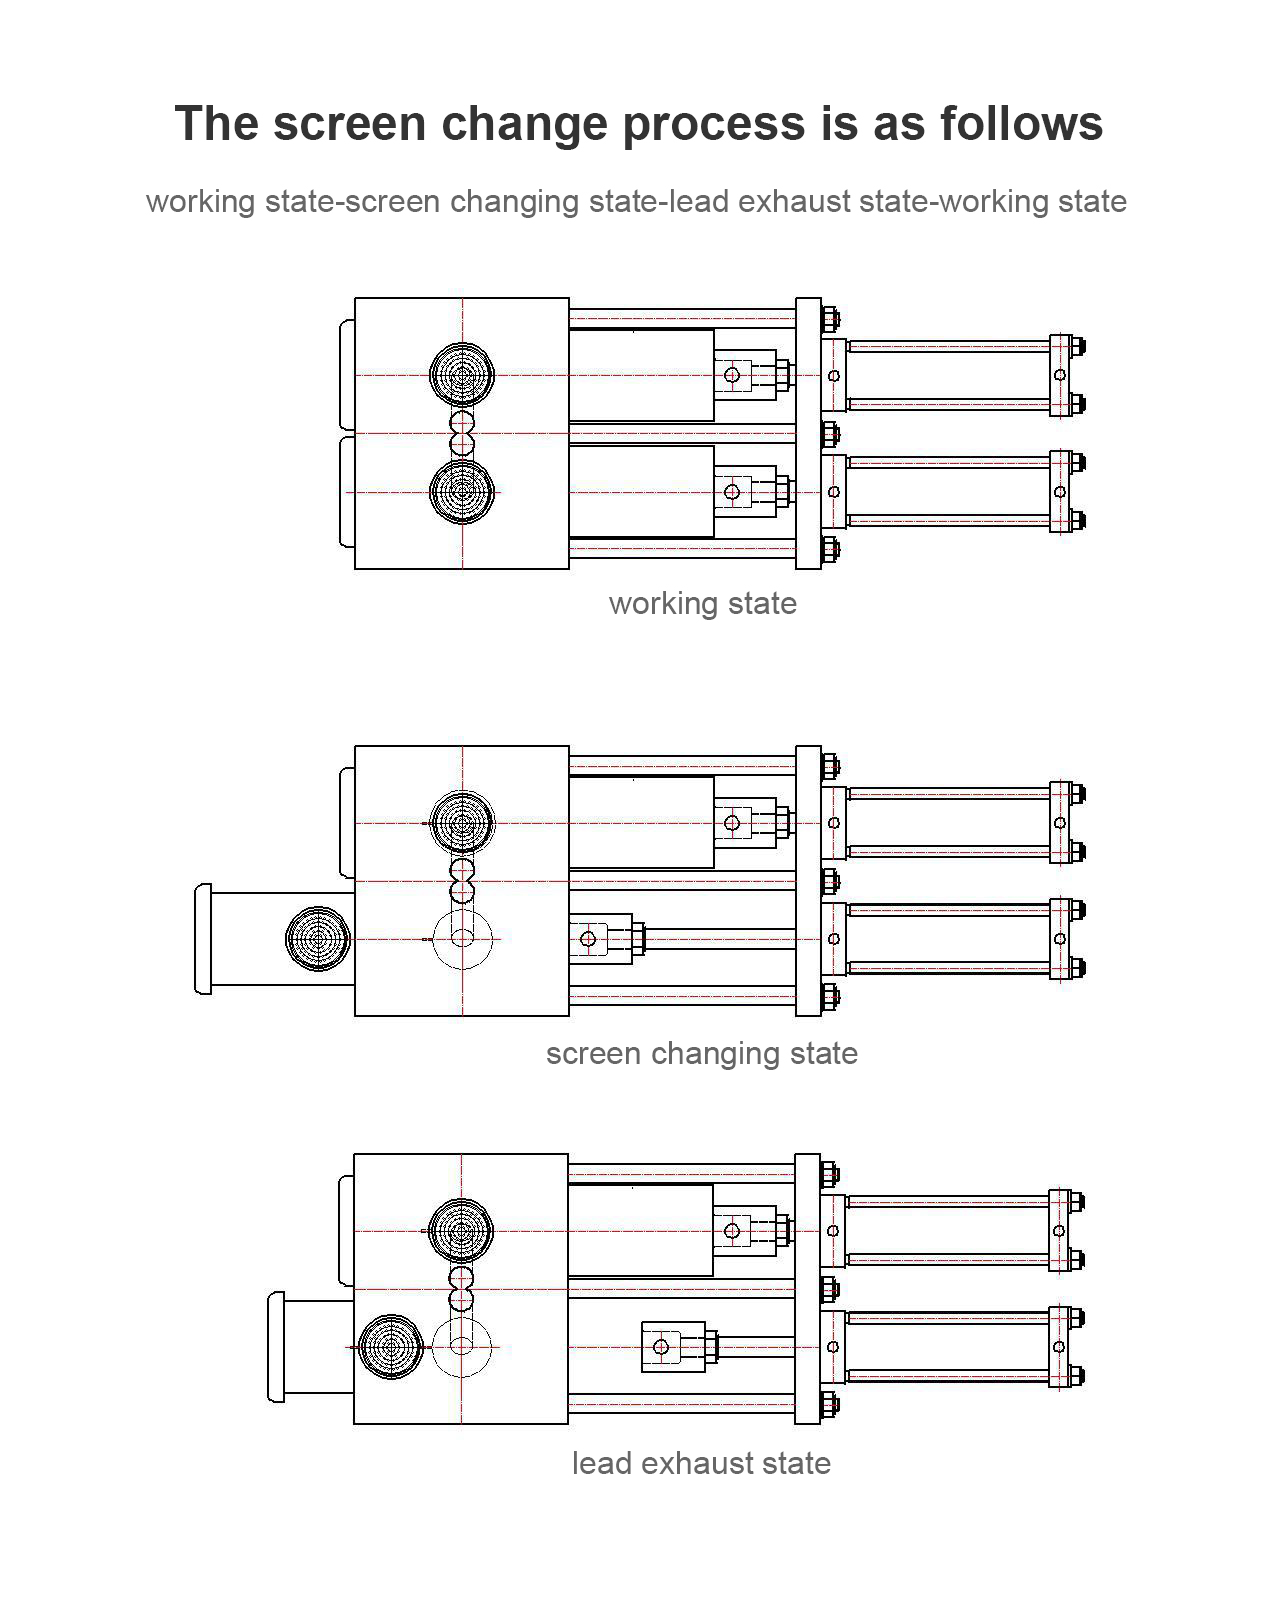 double piston continuous filter screen changer opertaion shown